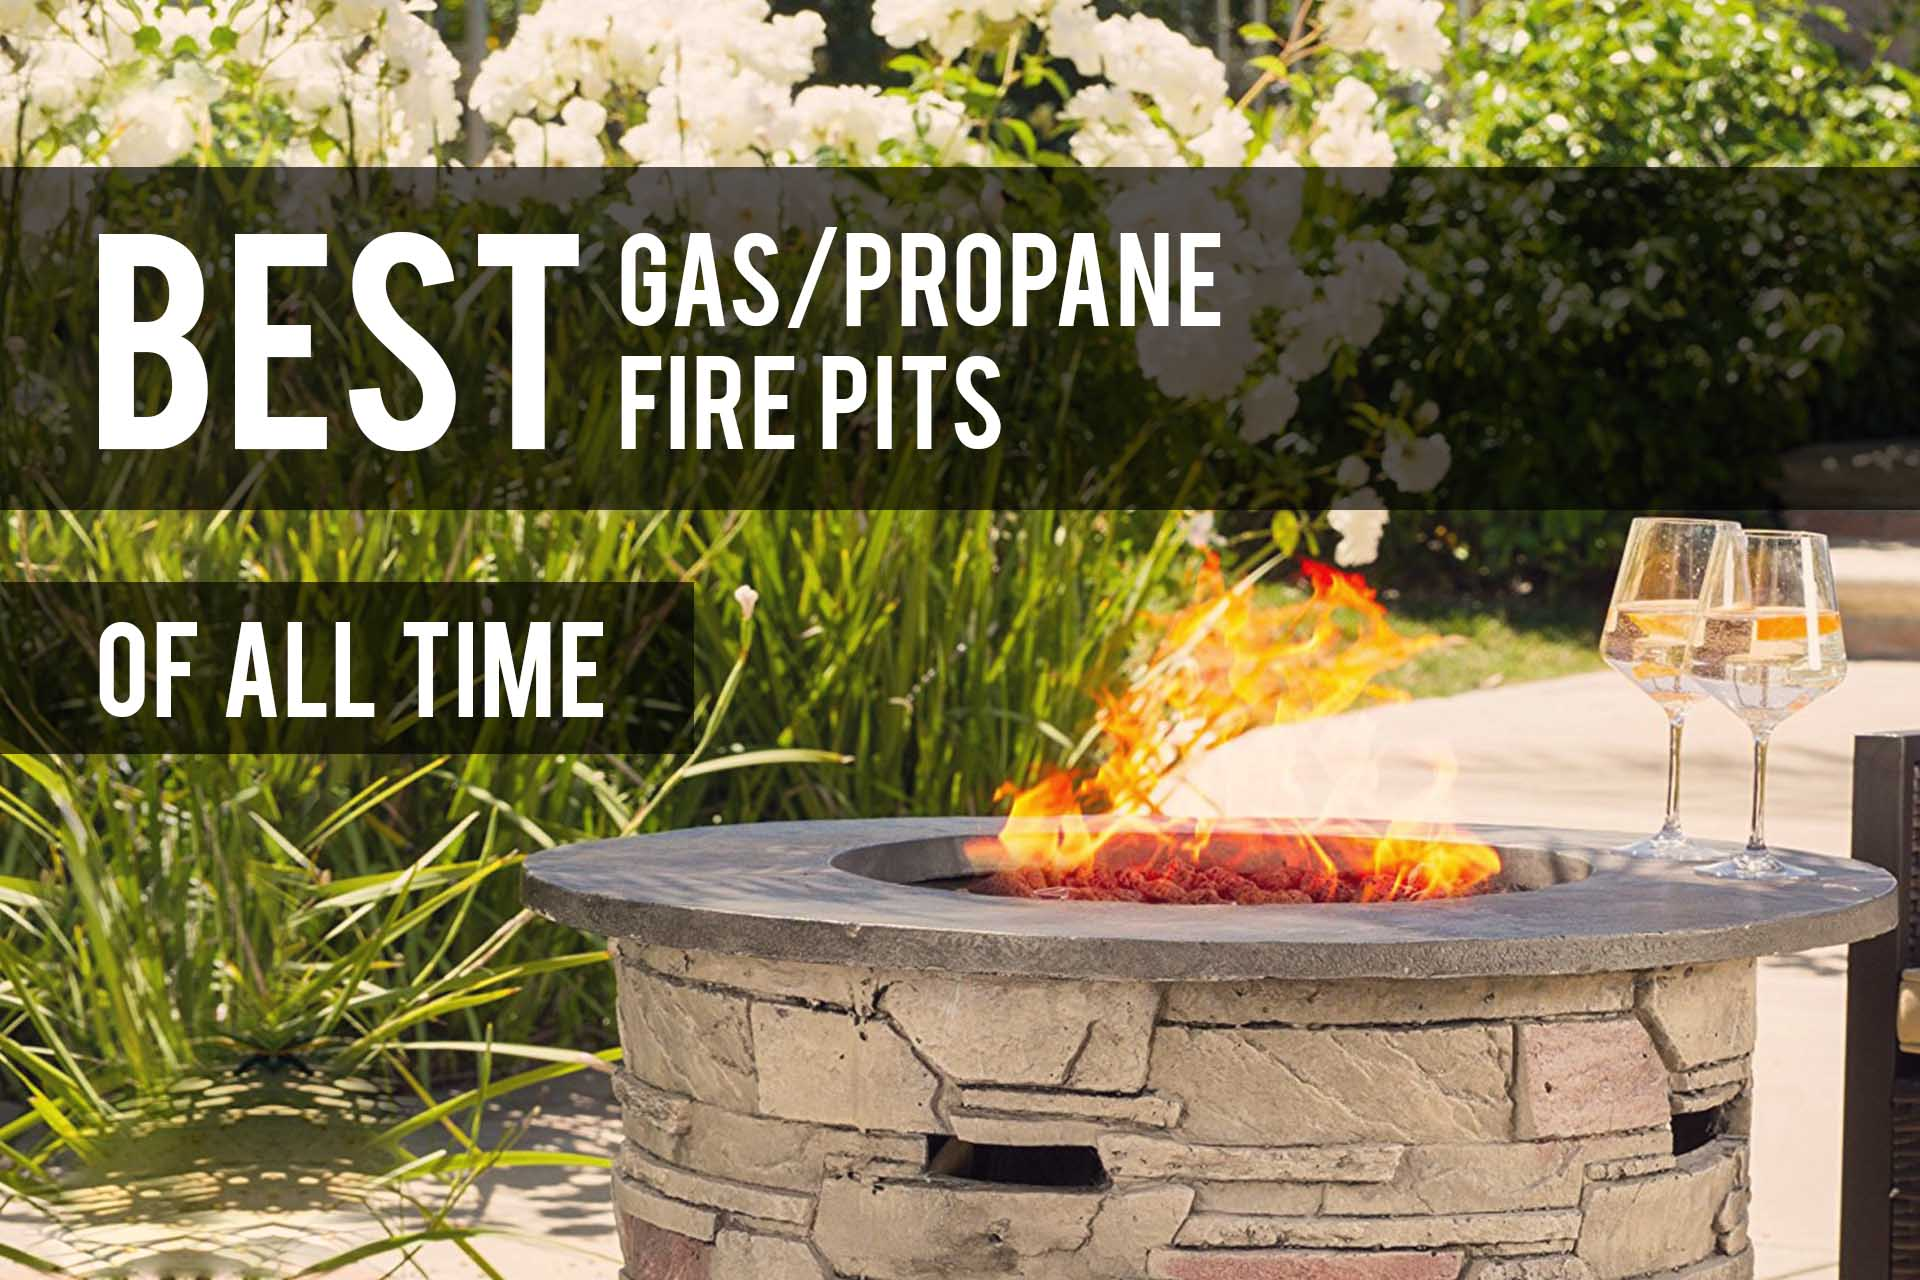 Best Propane Fire Pits 2021 Reviews Gas Propane The Patio Pro